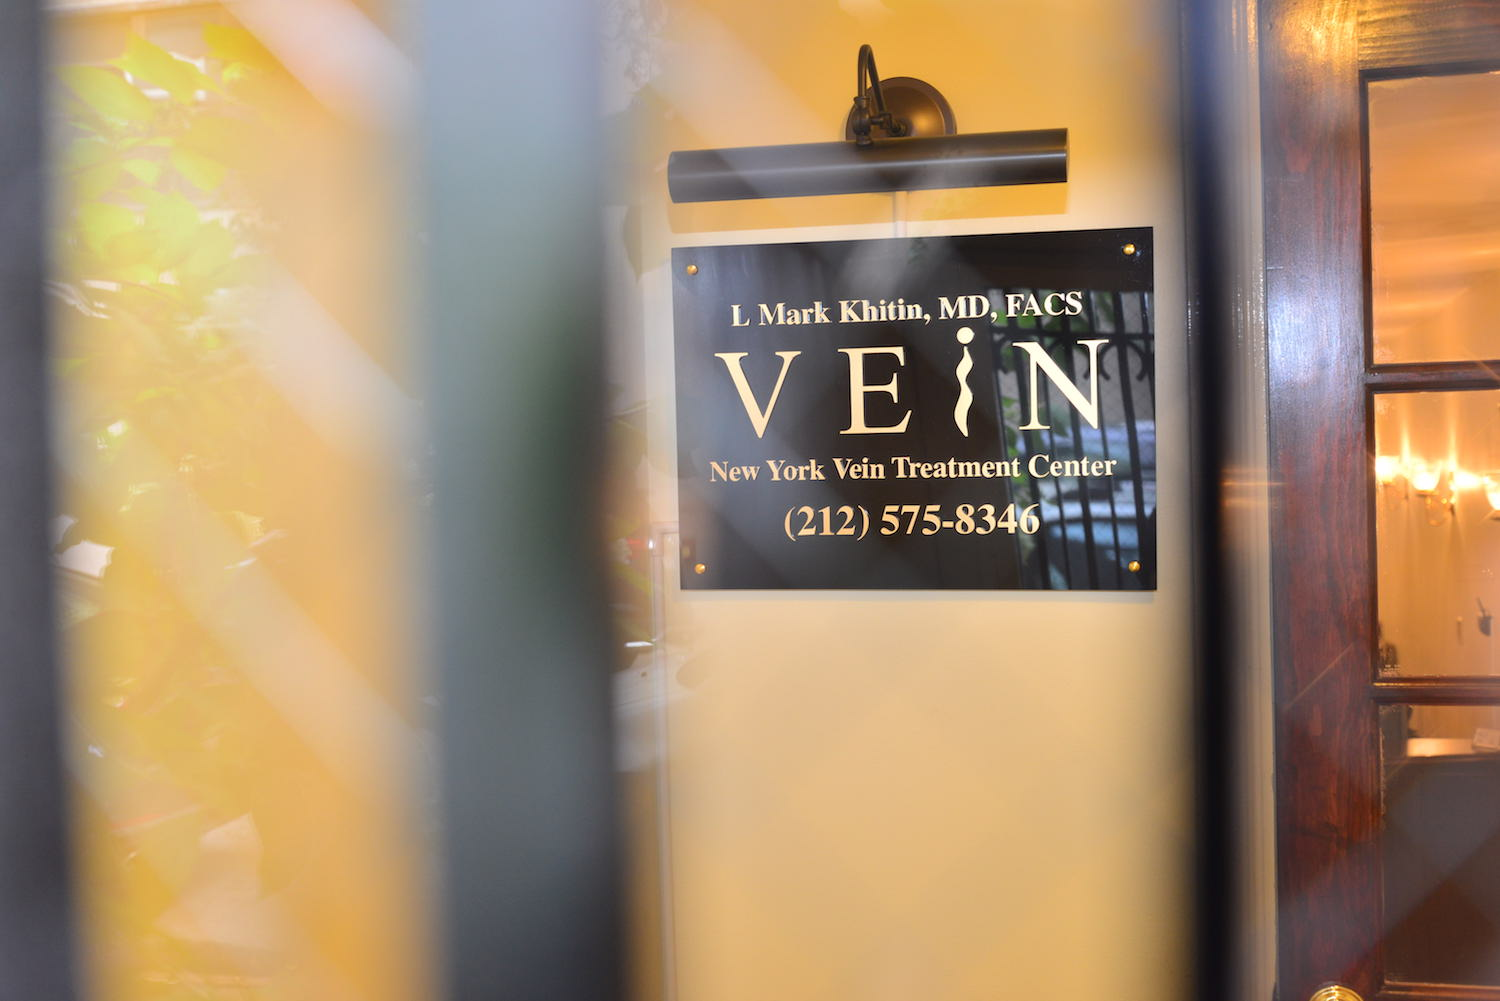 New York Vein Treatment Center - Our Practice 4